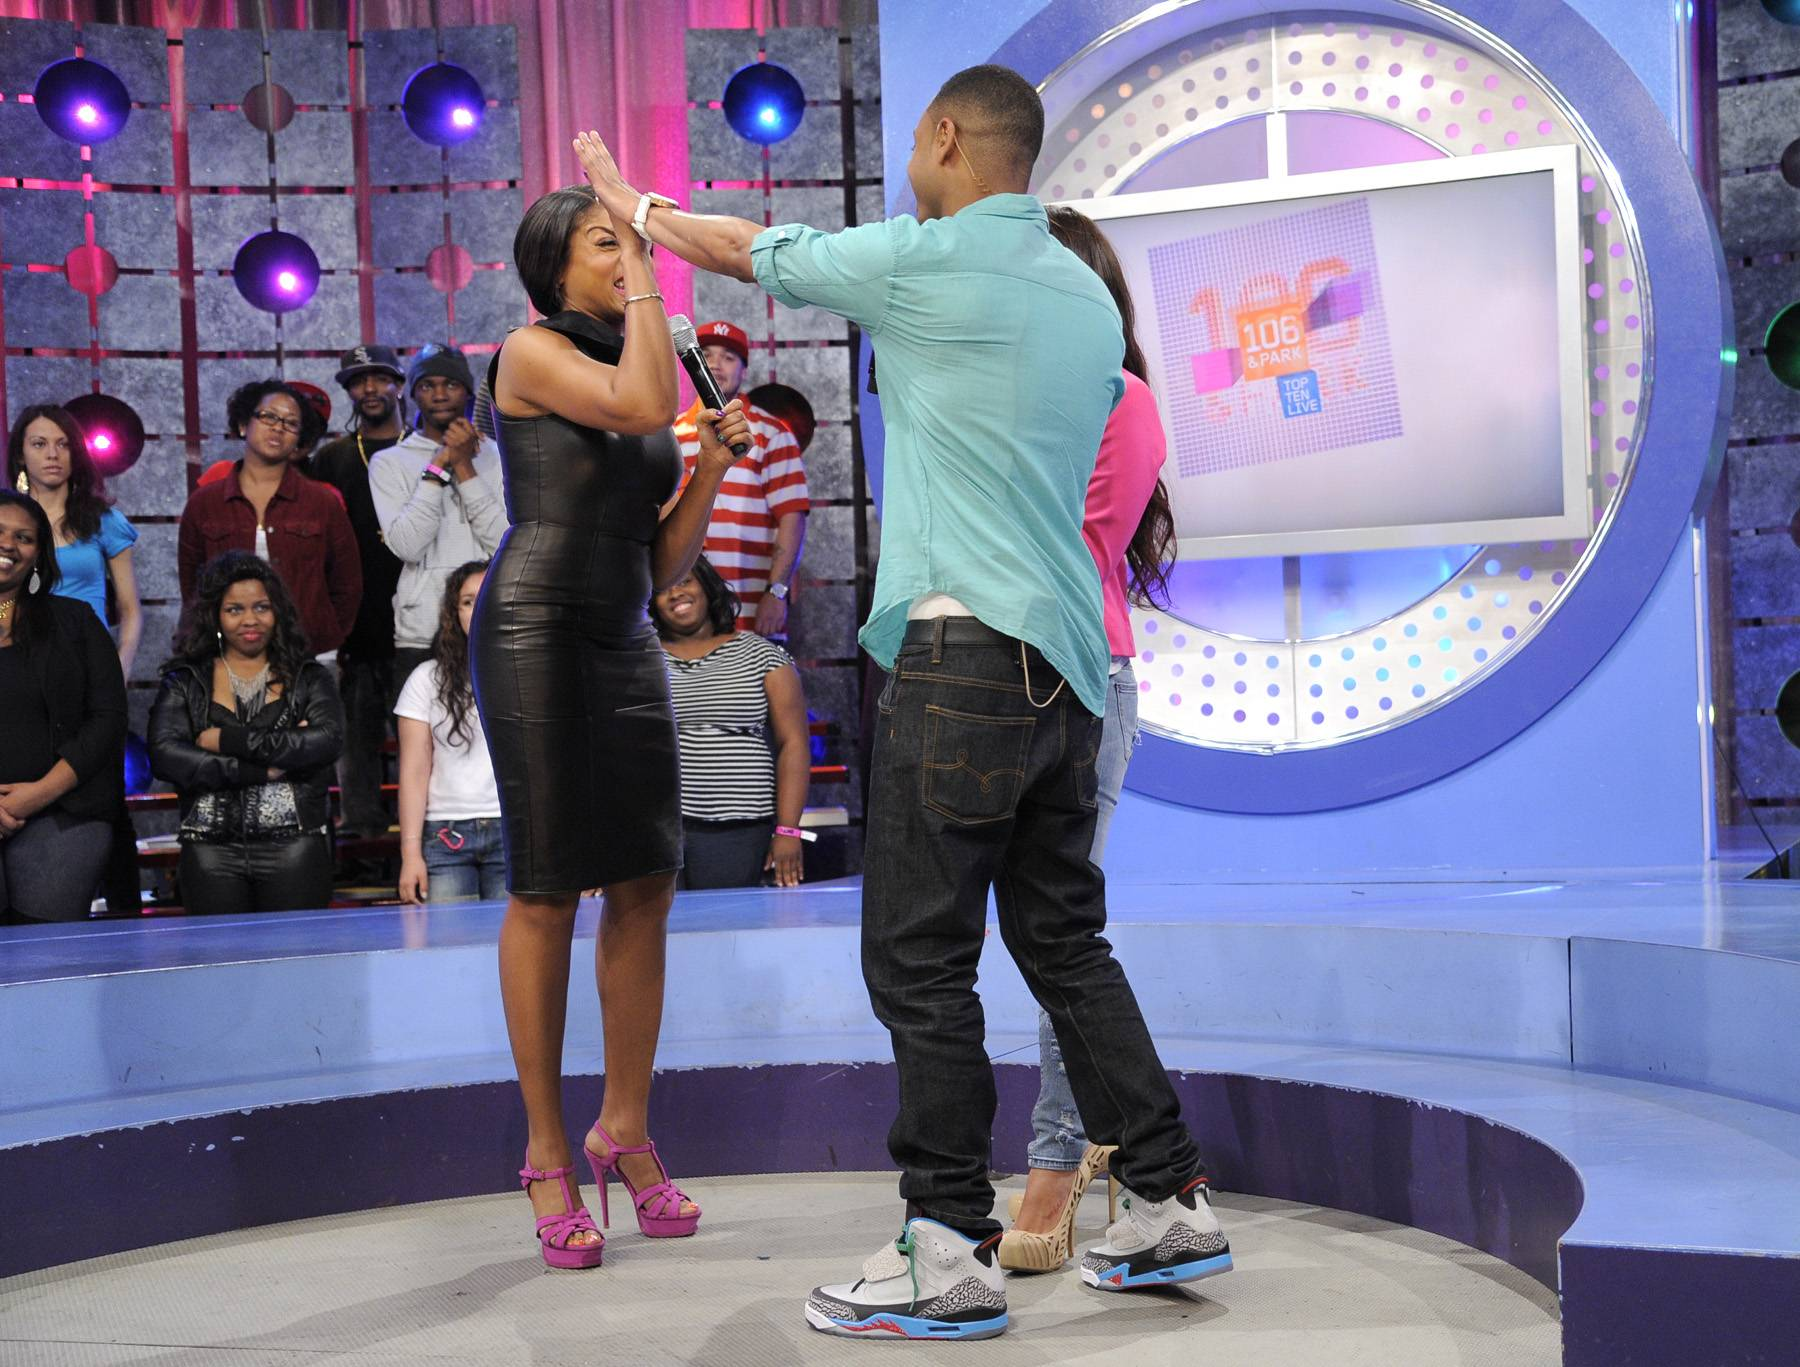 """High Five - Taraji P. Henson wants people to stop labeling movies as """"black movies"""" and just call them movies, with Rocsi Diaz and Terrence J at 106 & Park, April 17, 2012. (Photo: John Ricard/BET)"""